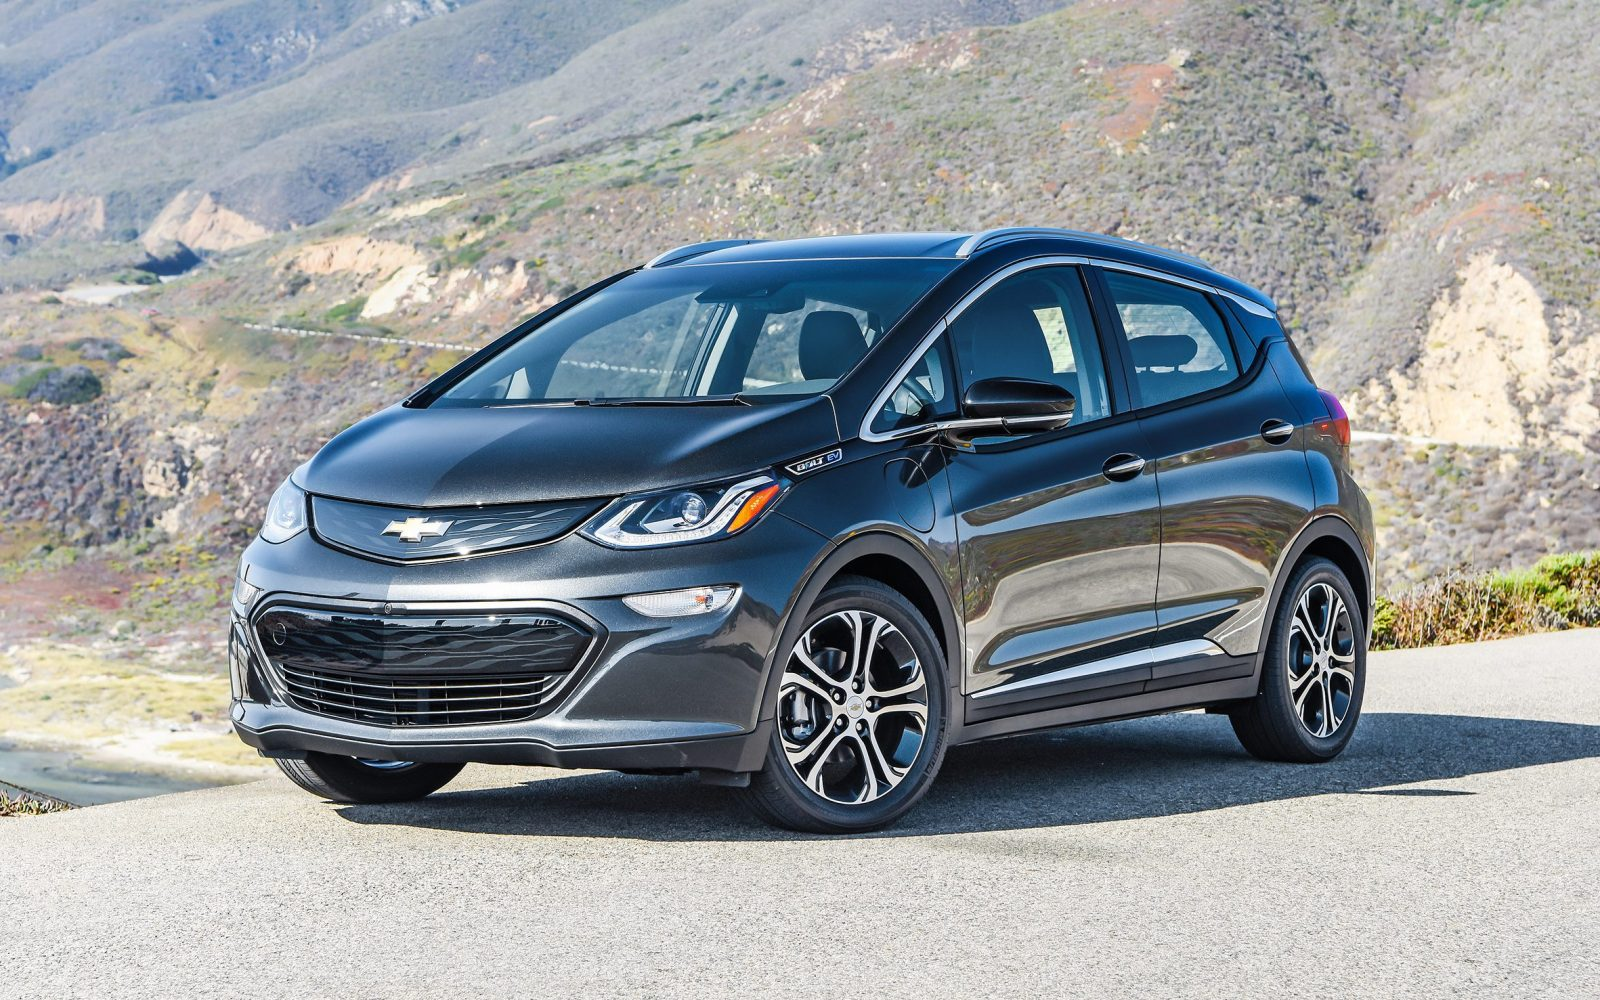 The Chevy Bolt EV will be significantly cheaper in Canada, and include DC fast-charging